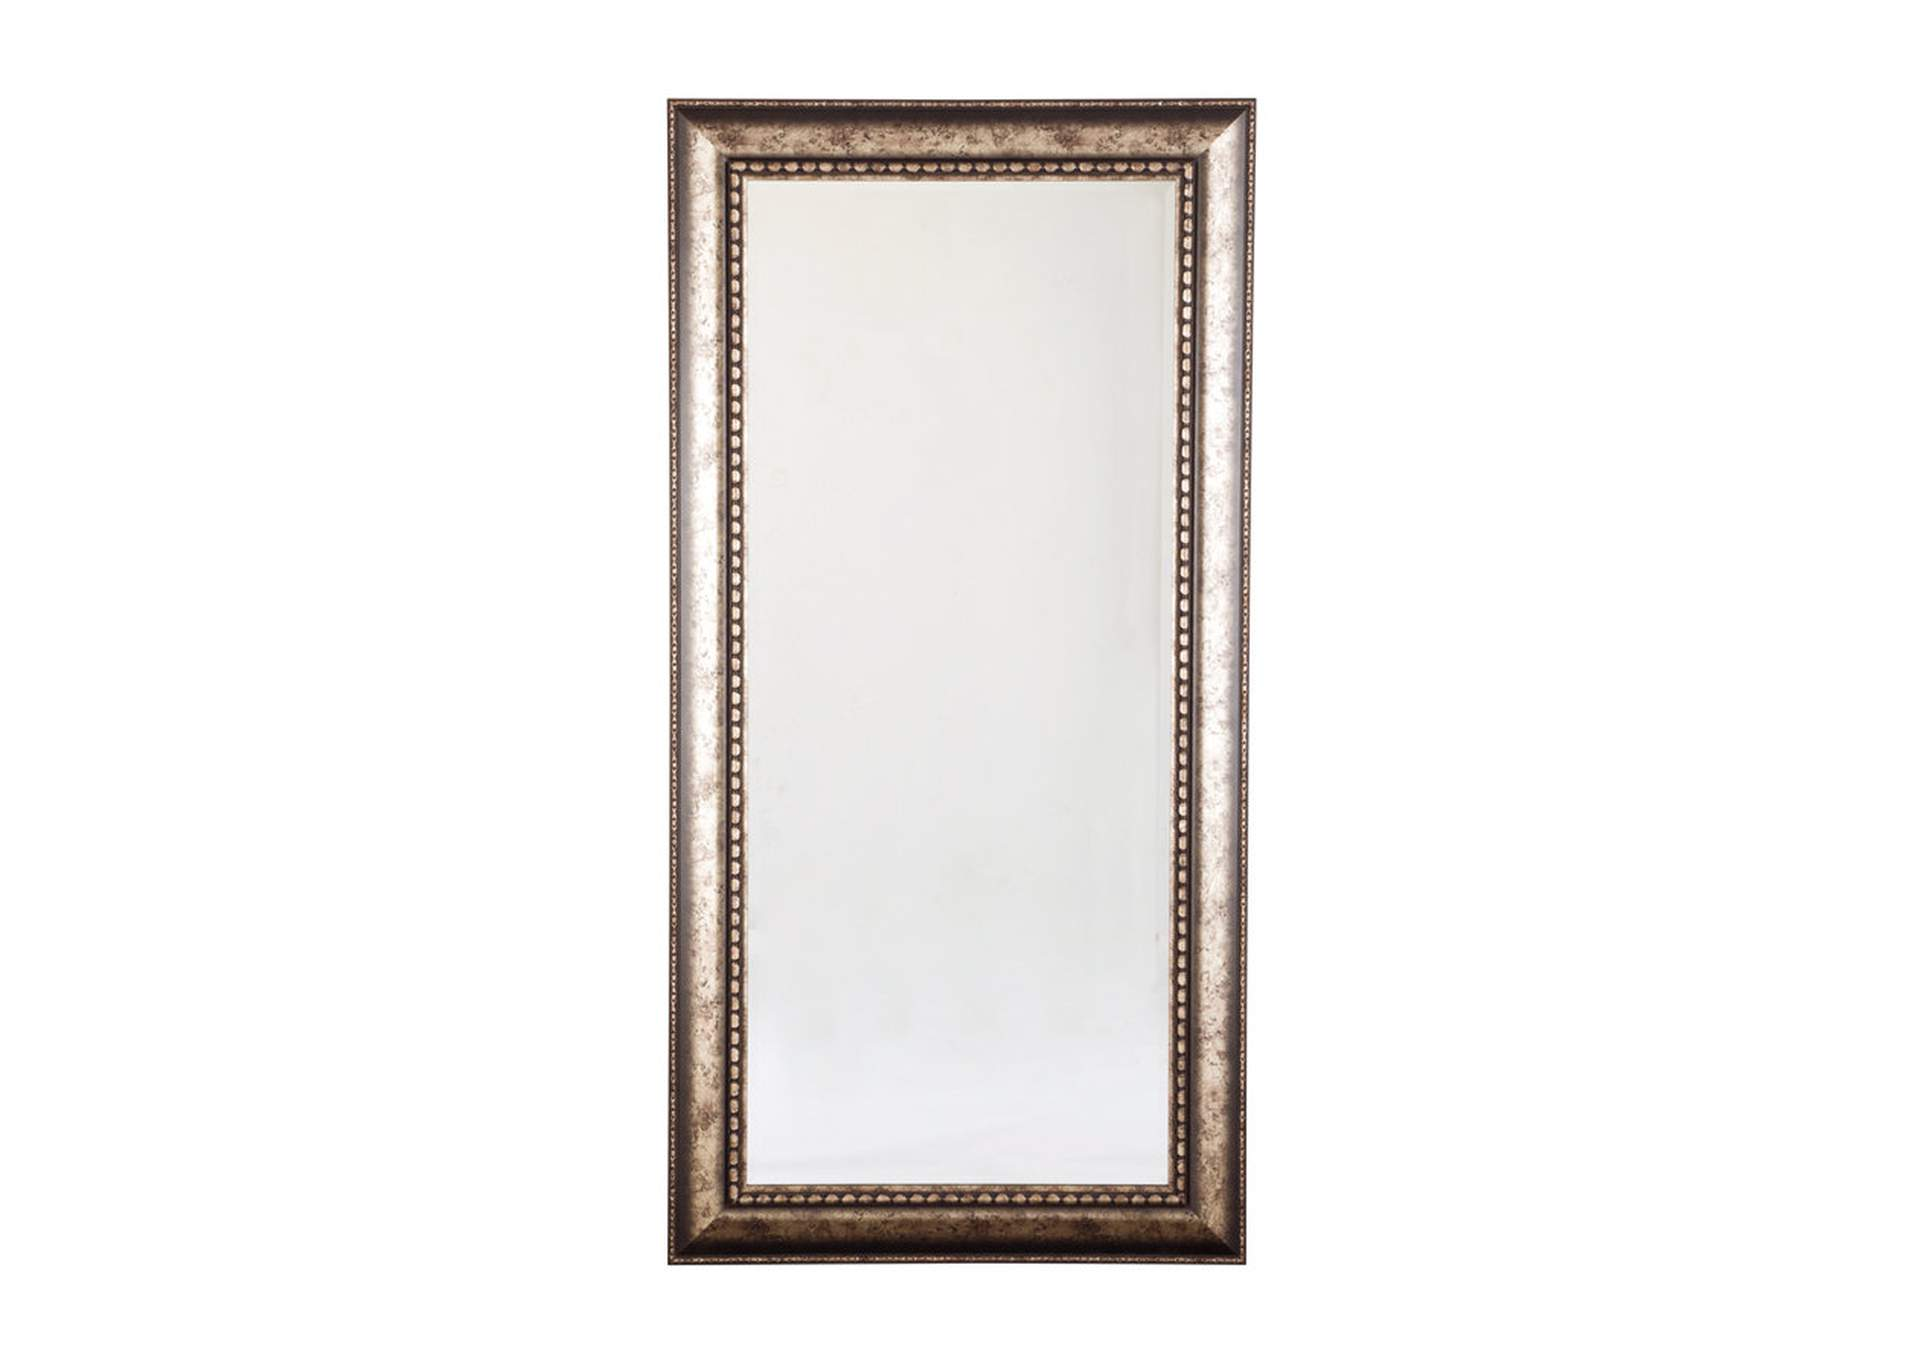 Dulal Antique Silver Finish Accent Mirror,Signature Design By Ashley